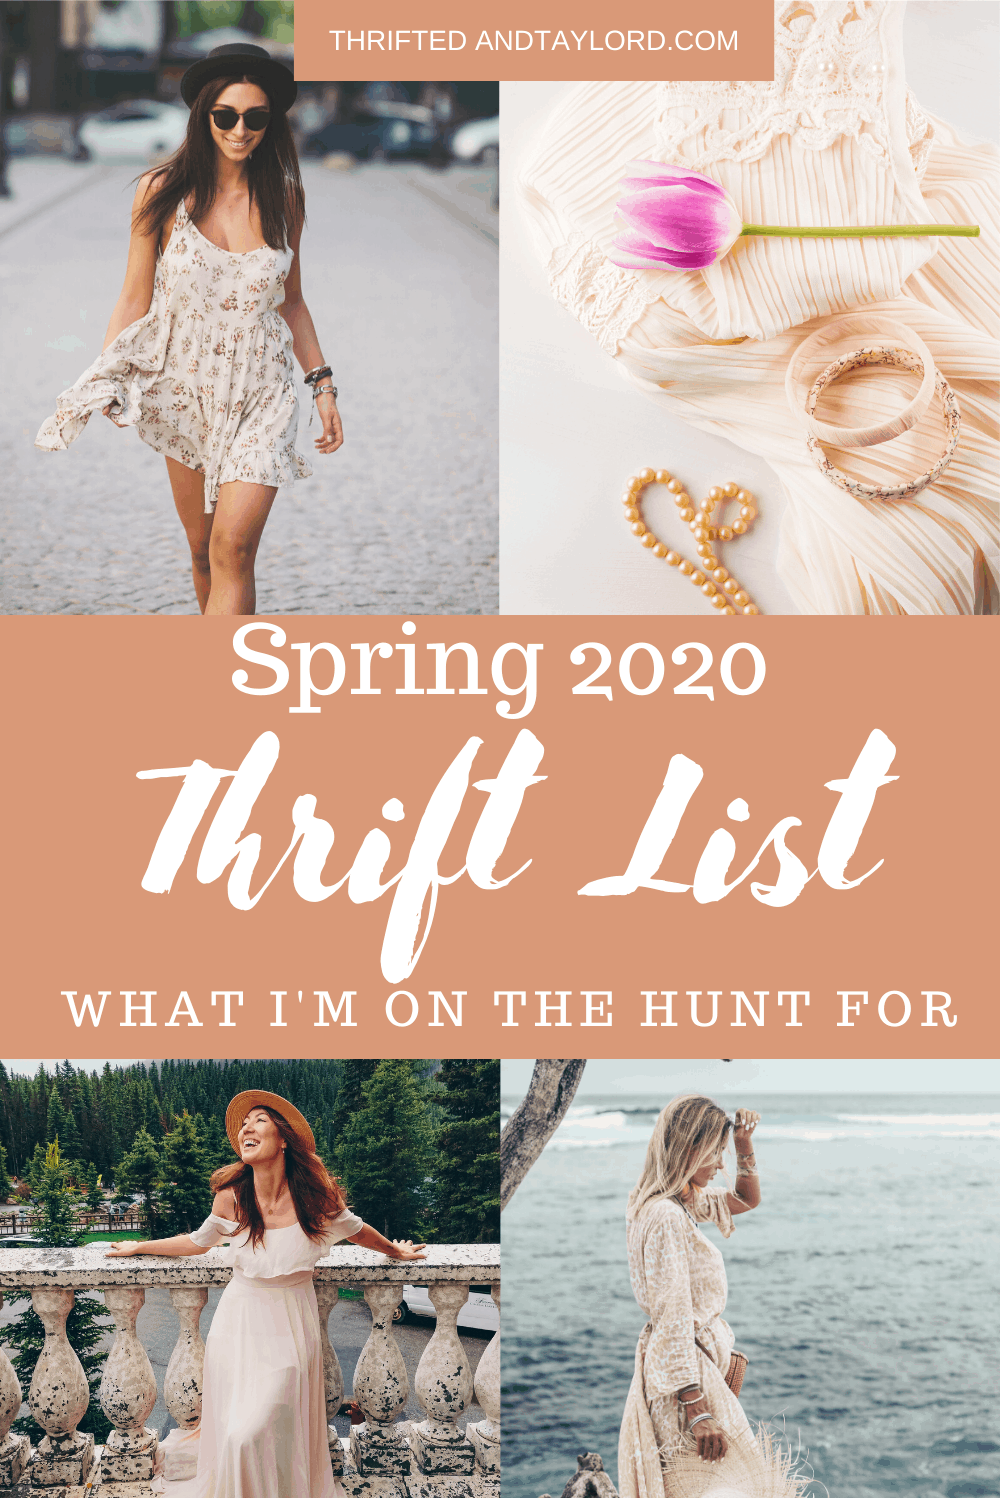 Thrifting Spring Trends 2020 | What I'm On The Hunt For